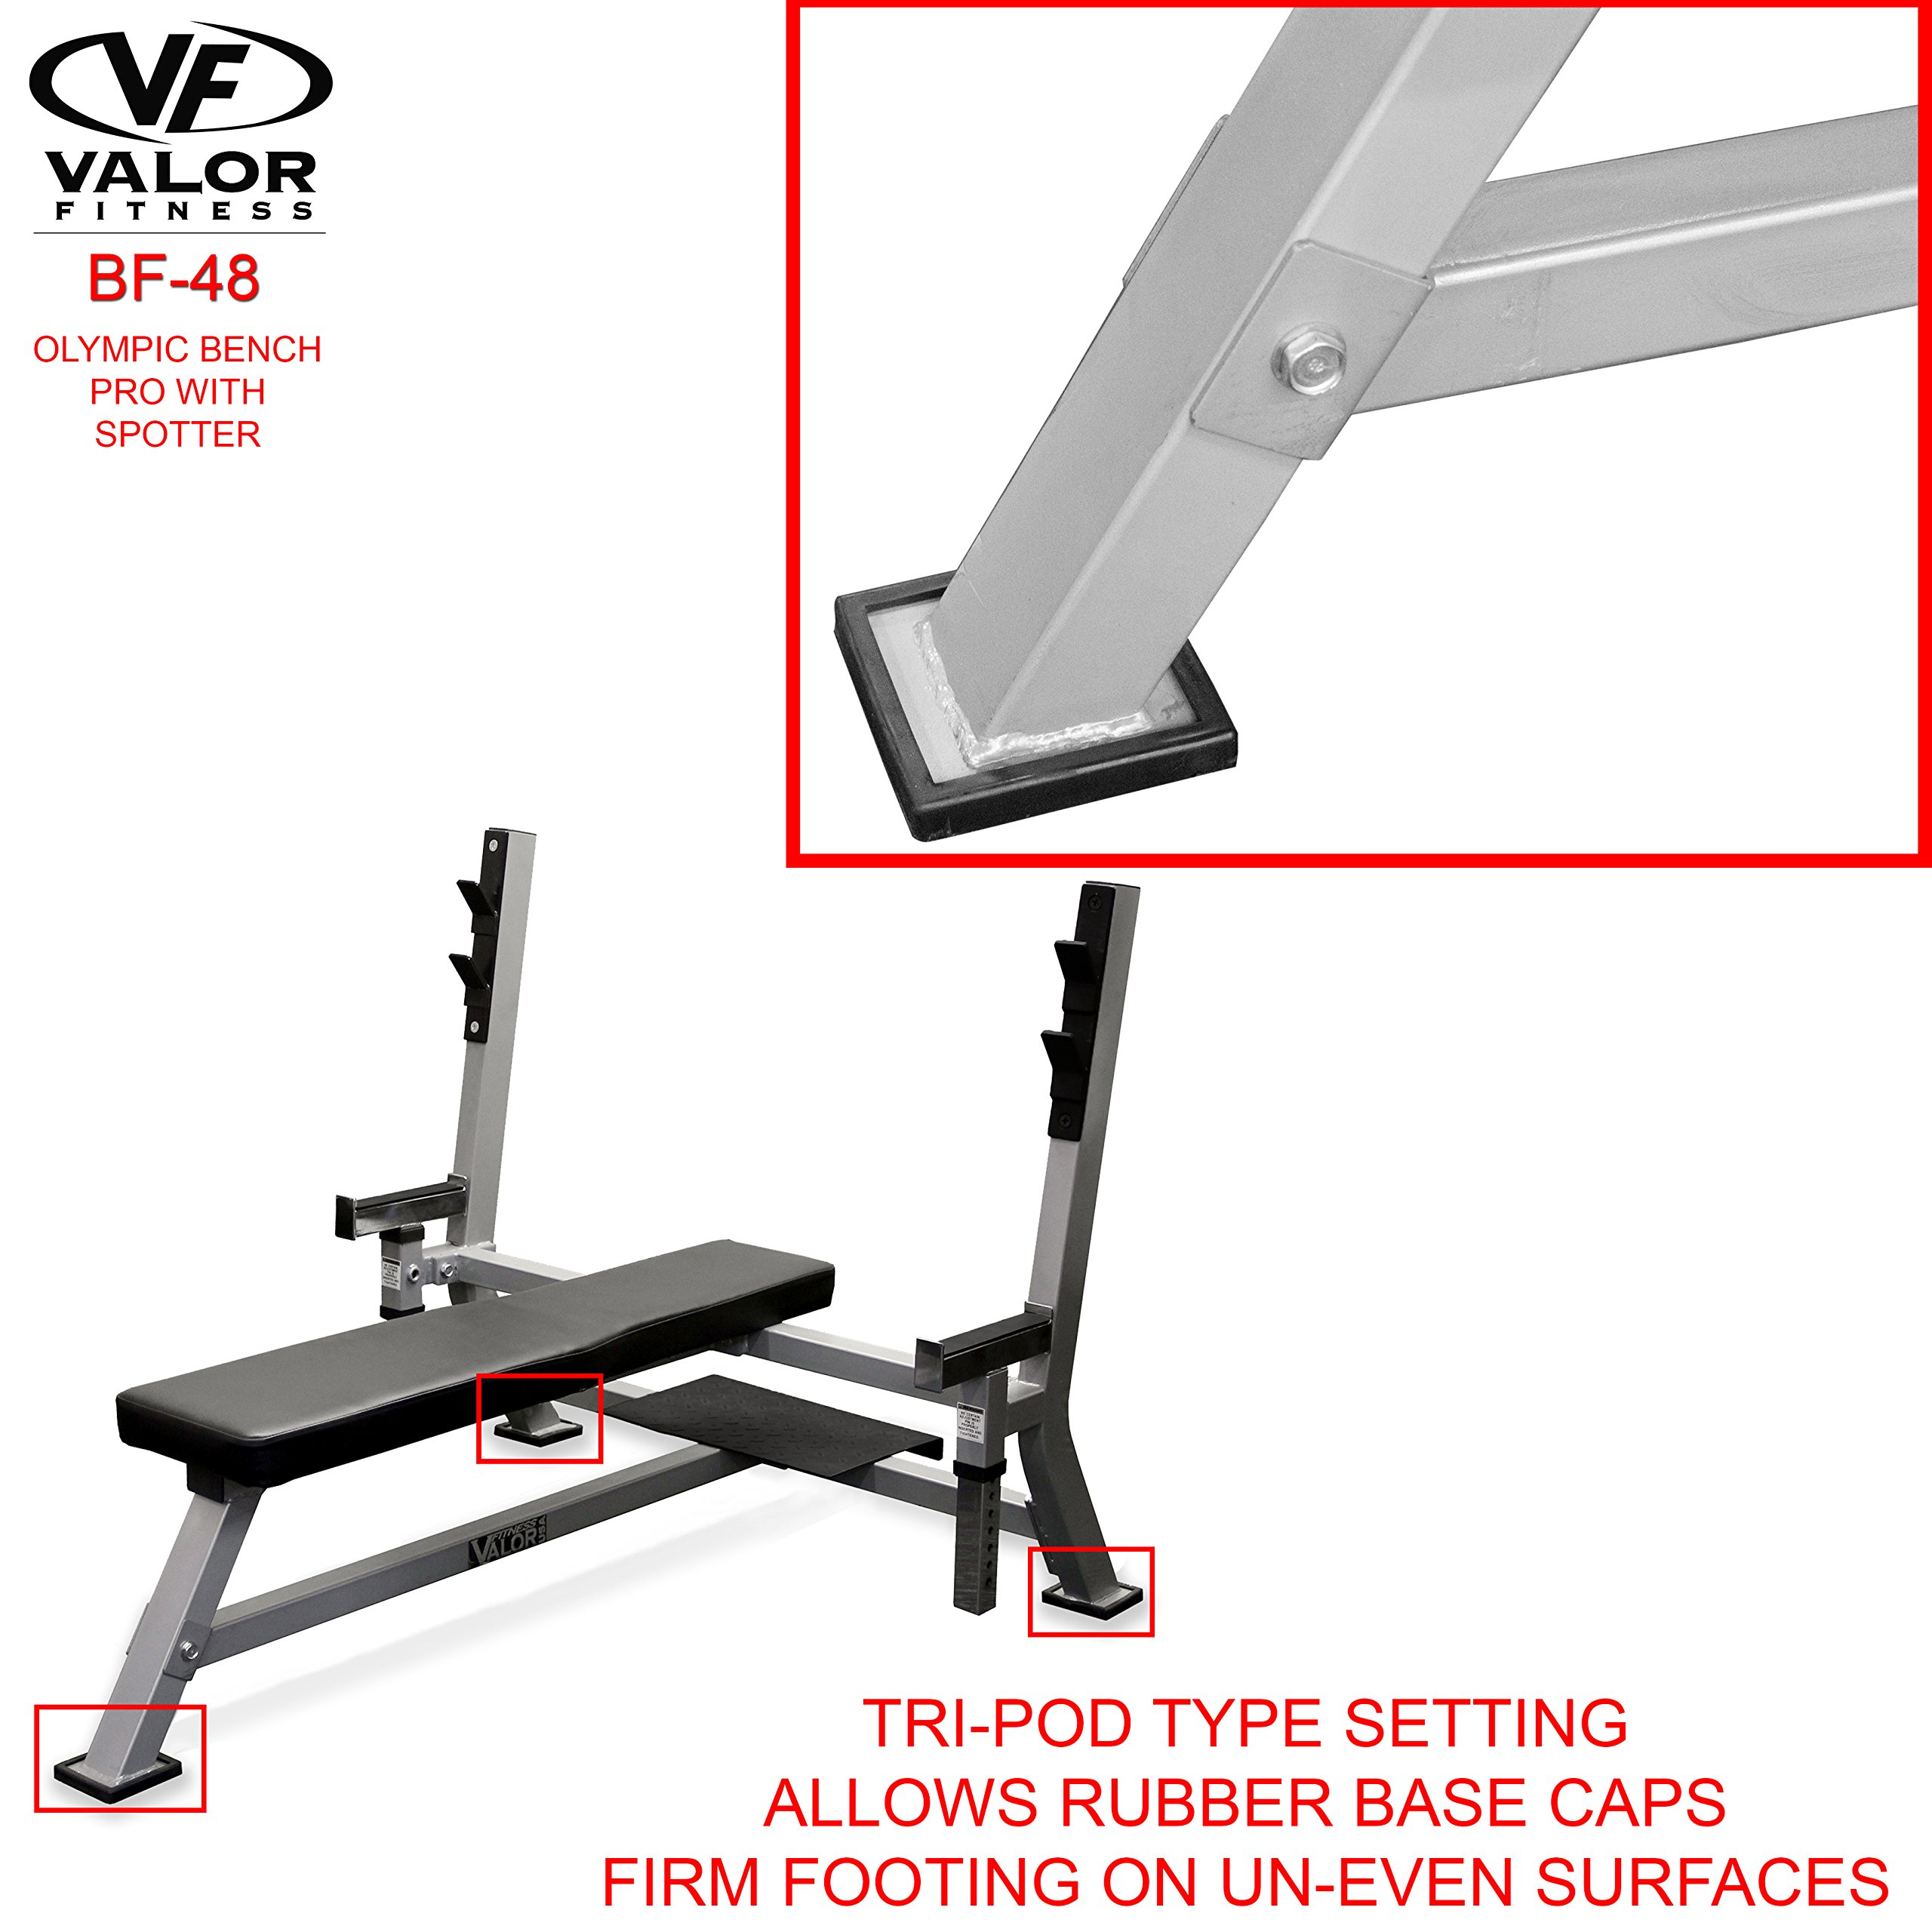 Valor Fitness BF-48 Olympic Bench Pro with Spotter by Valor Fitness (Image #7)